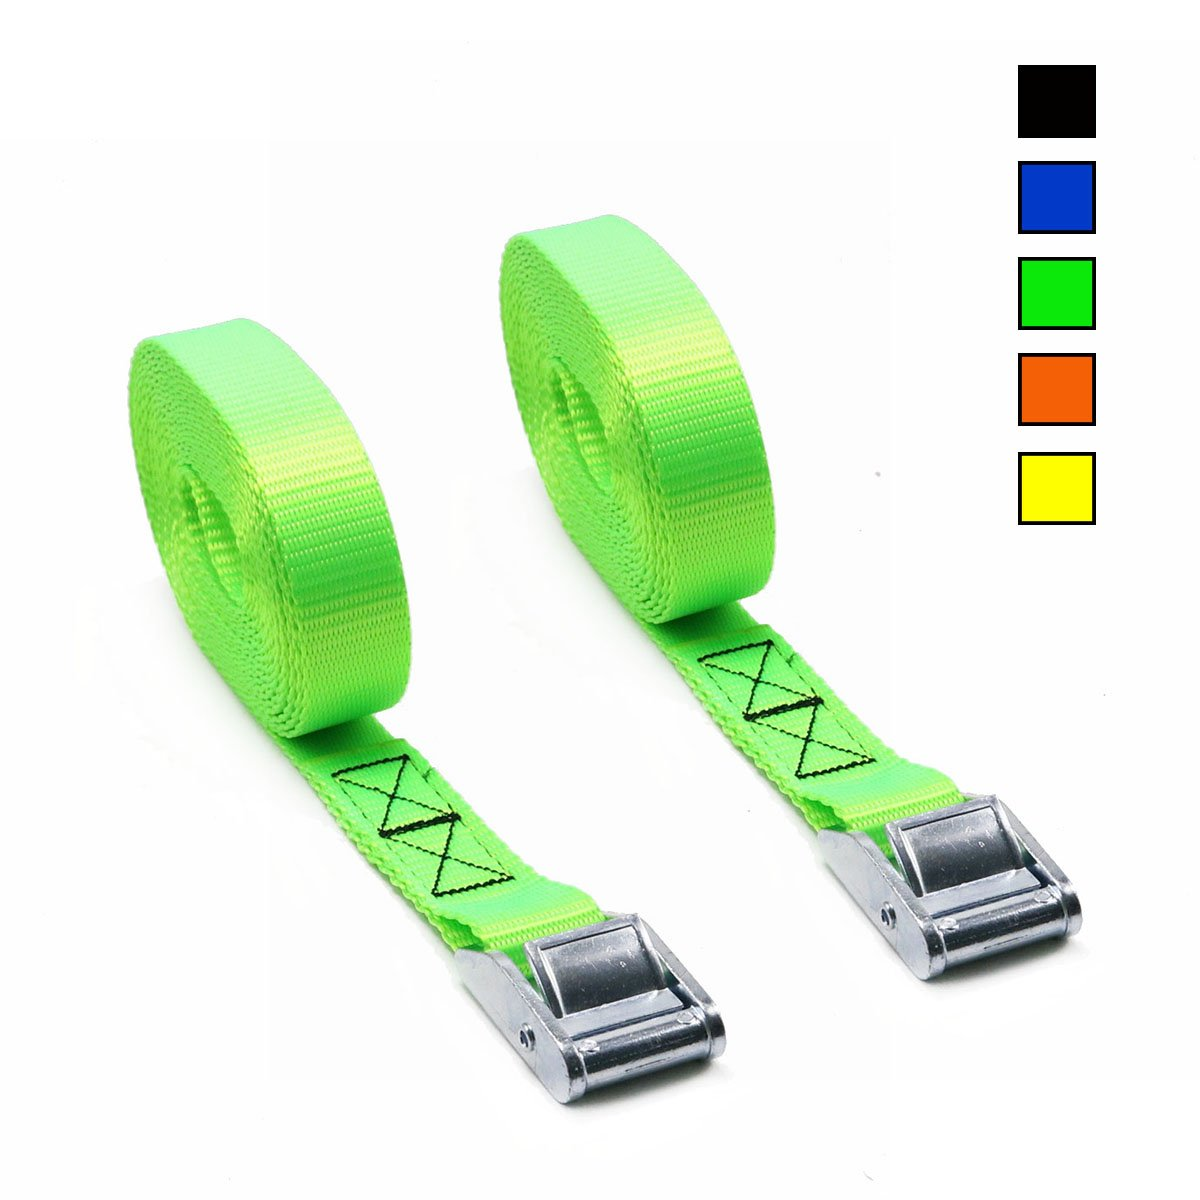 Xiangle Premium Cam Buckle Lashing Strap Tie Down Straps 8-foot-by-1-inch up to 1000lbs,2 Pack (16FT, 2pk Green)